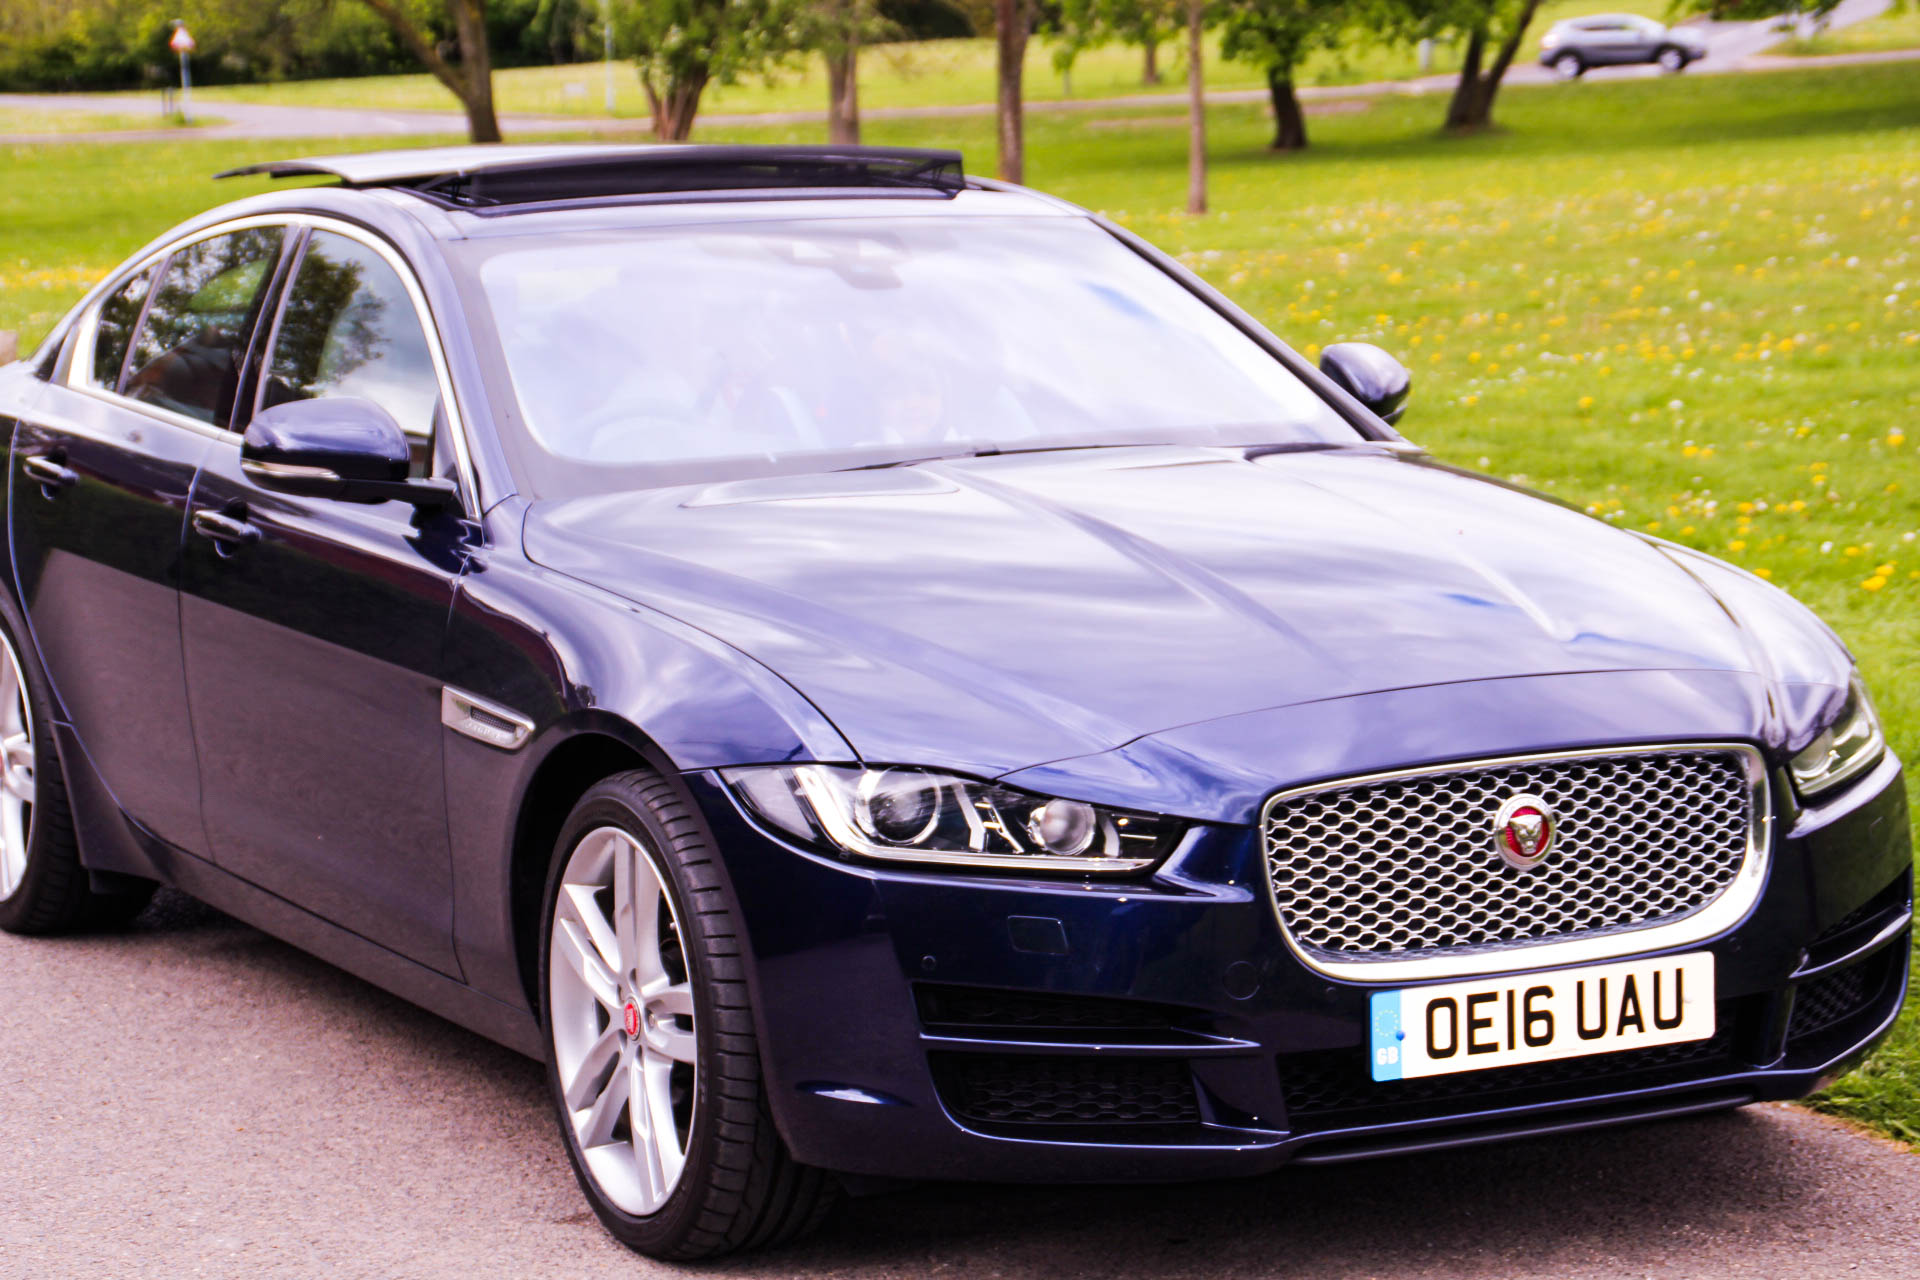 Jaguar, Jaguar XE review, Jaguar XE R Sport, school run dad, dad blog uk, dad bloguk.com, dadbloguk